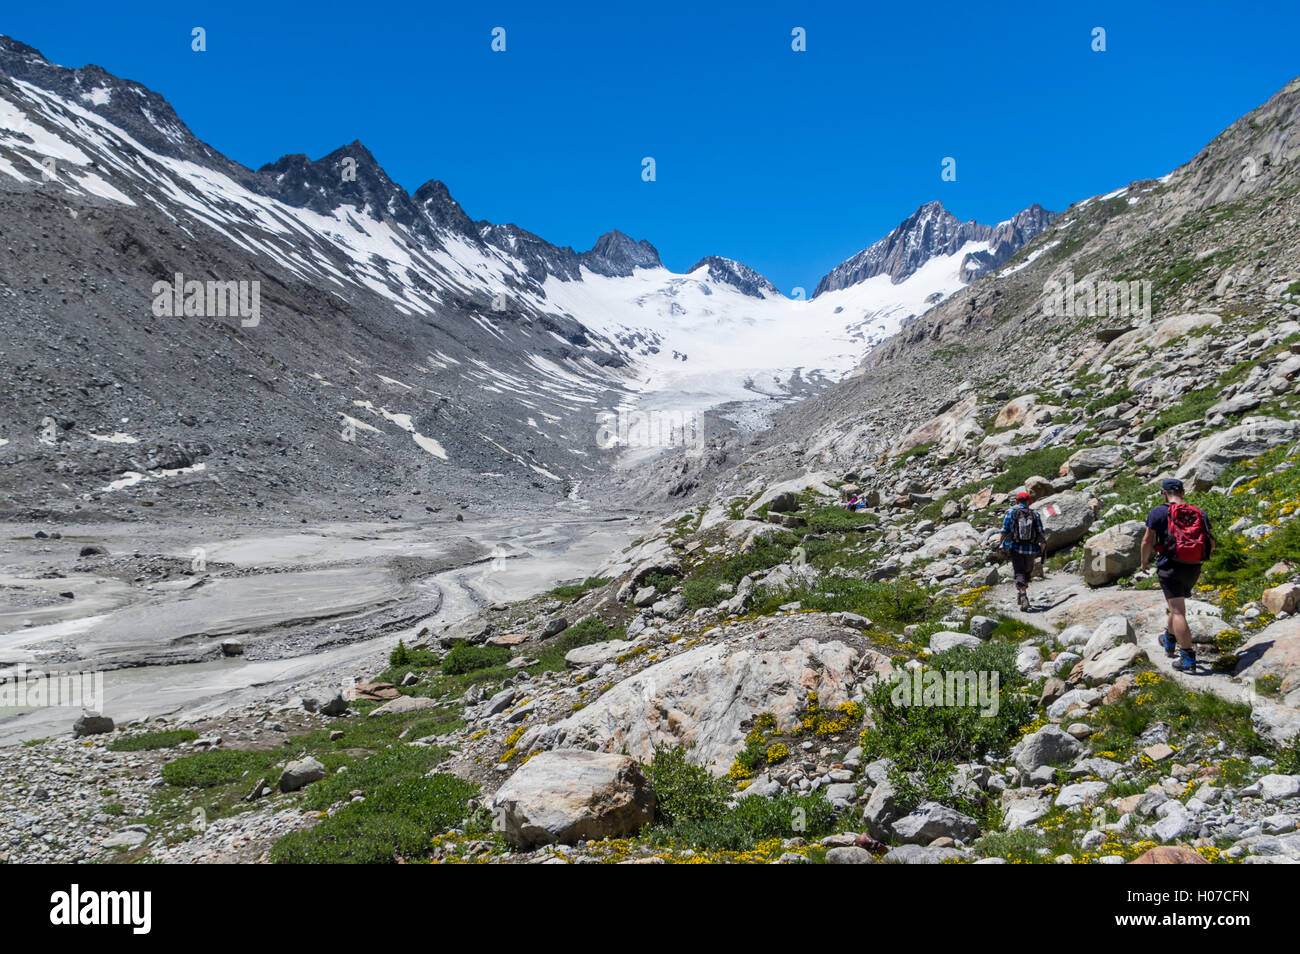 Two male hikers approach Oberaargletscher, a glacier in the Swiss Alps in the Grimsel region of Berner Oberland, - Stock Image